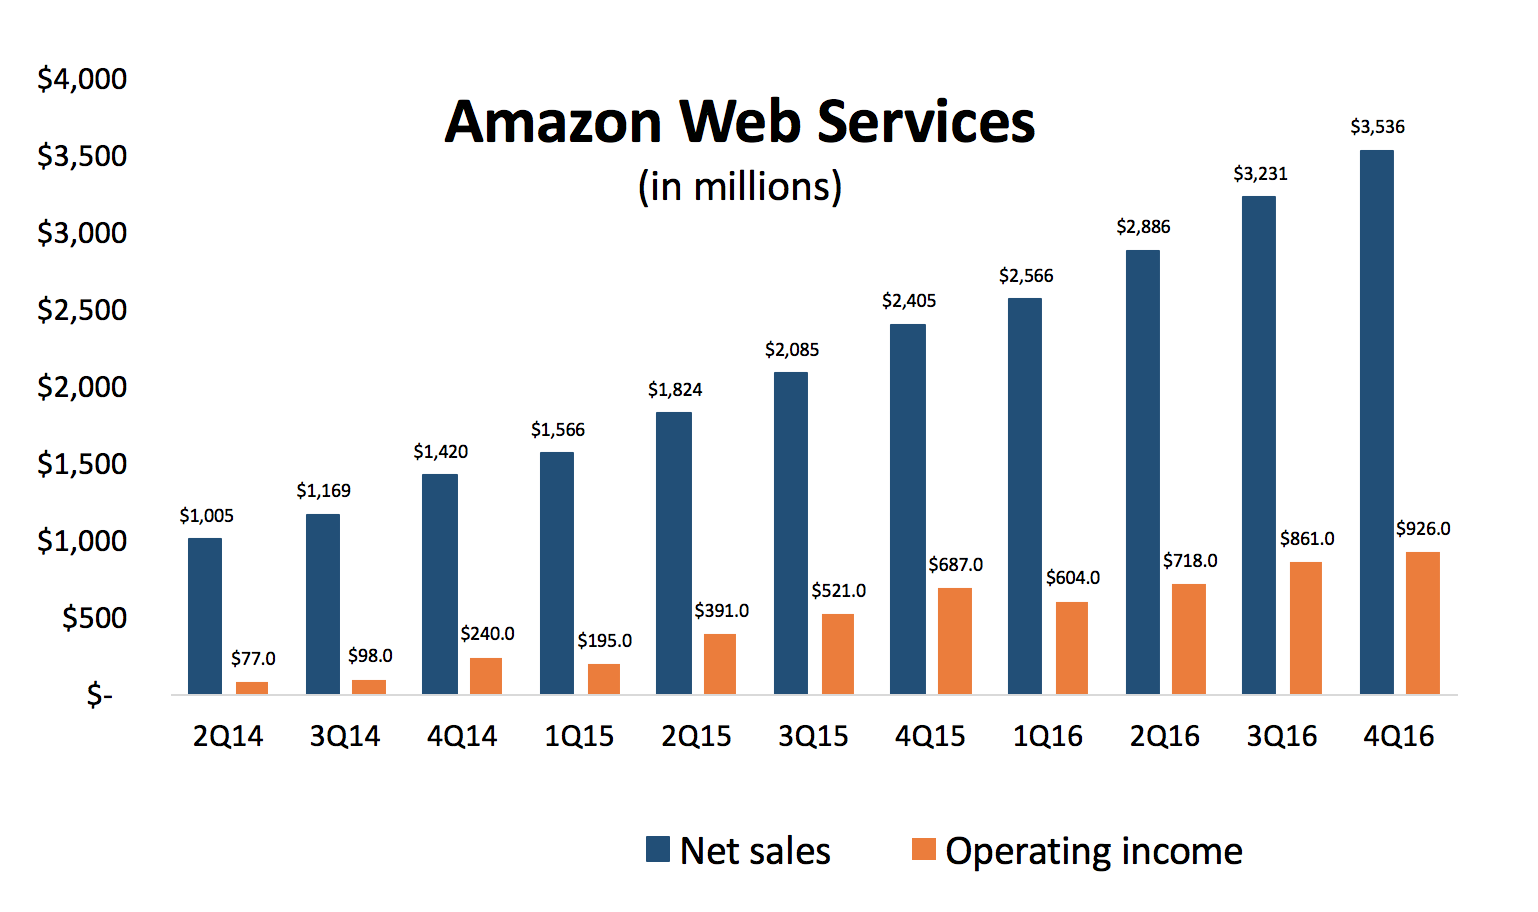 Amazon Web Services posts $3.5B in sales, up 47% from last year, reaches $14B annual run rate ...